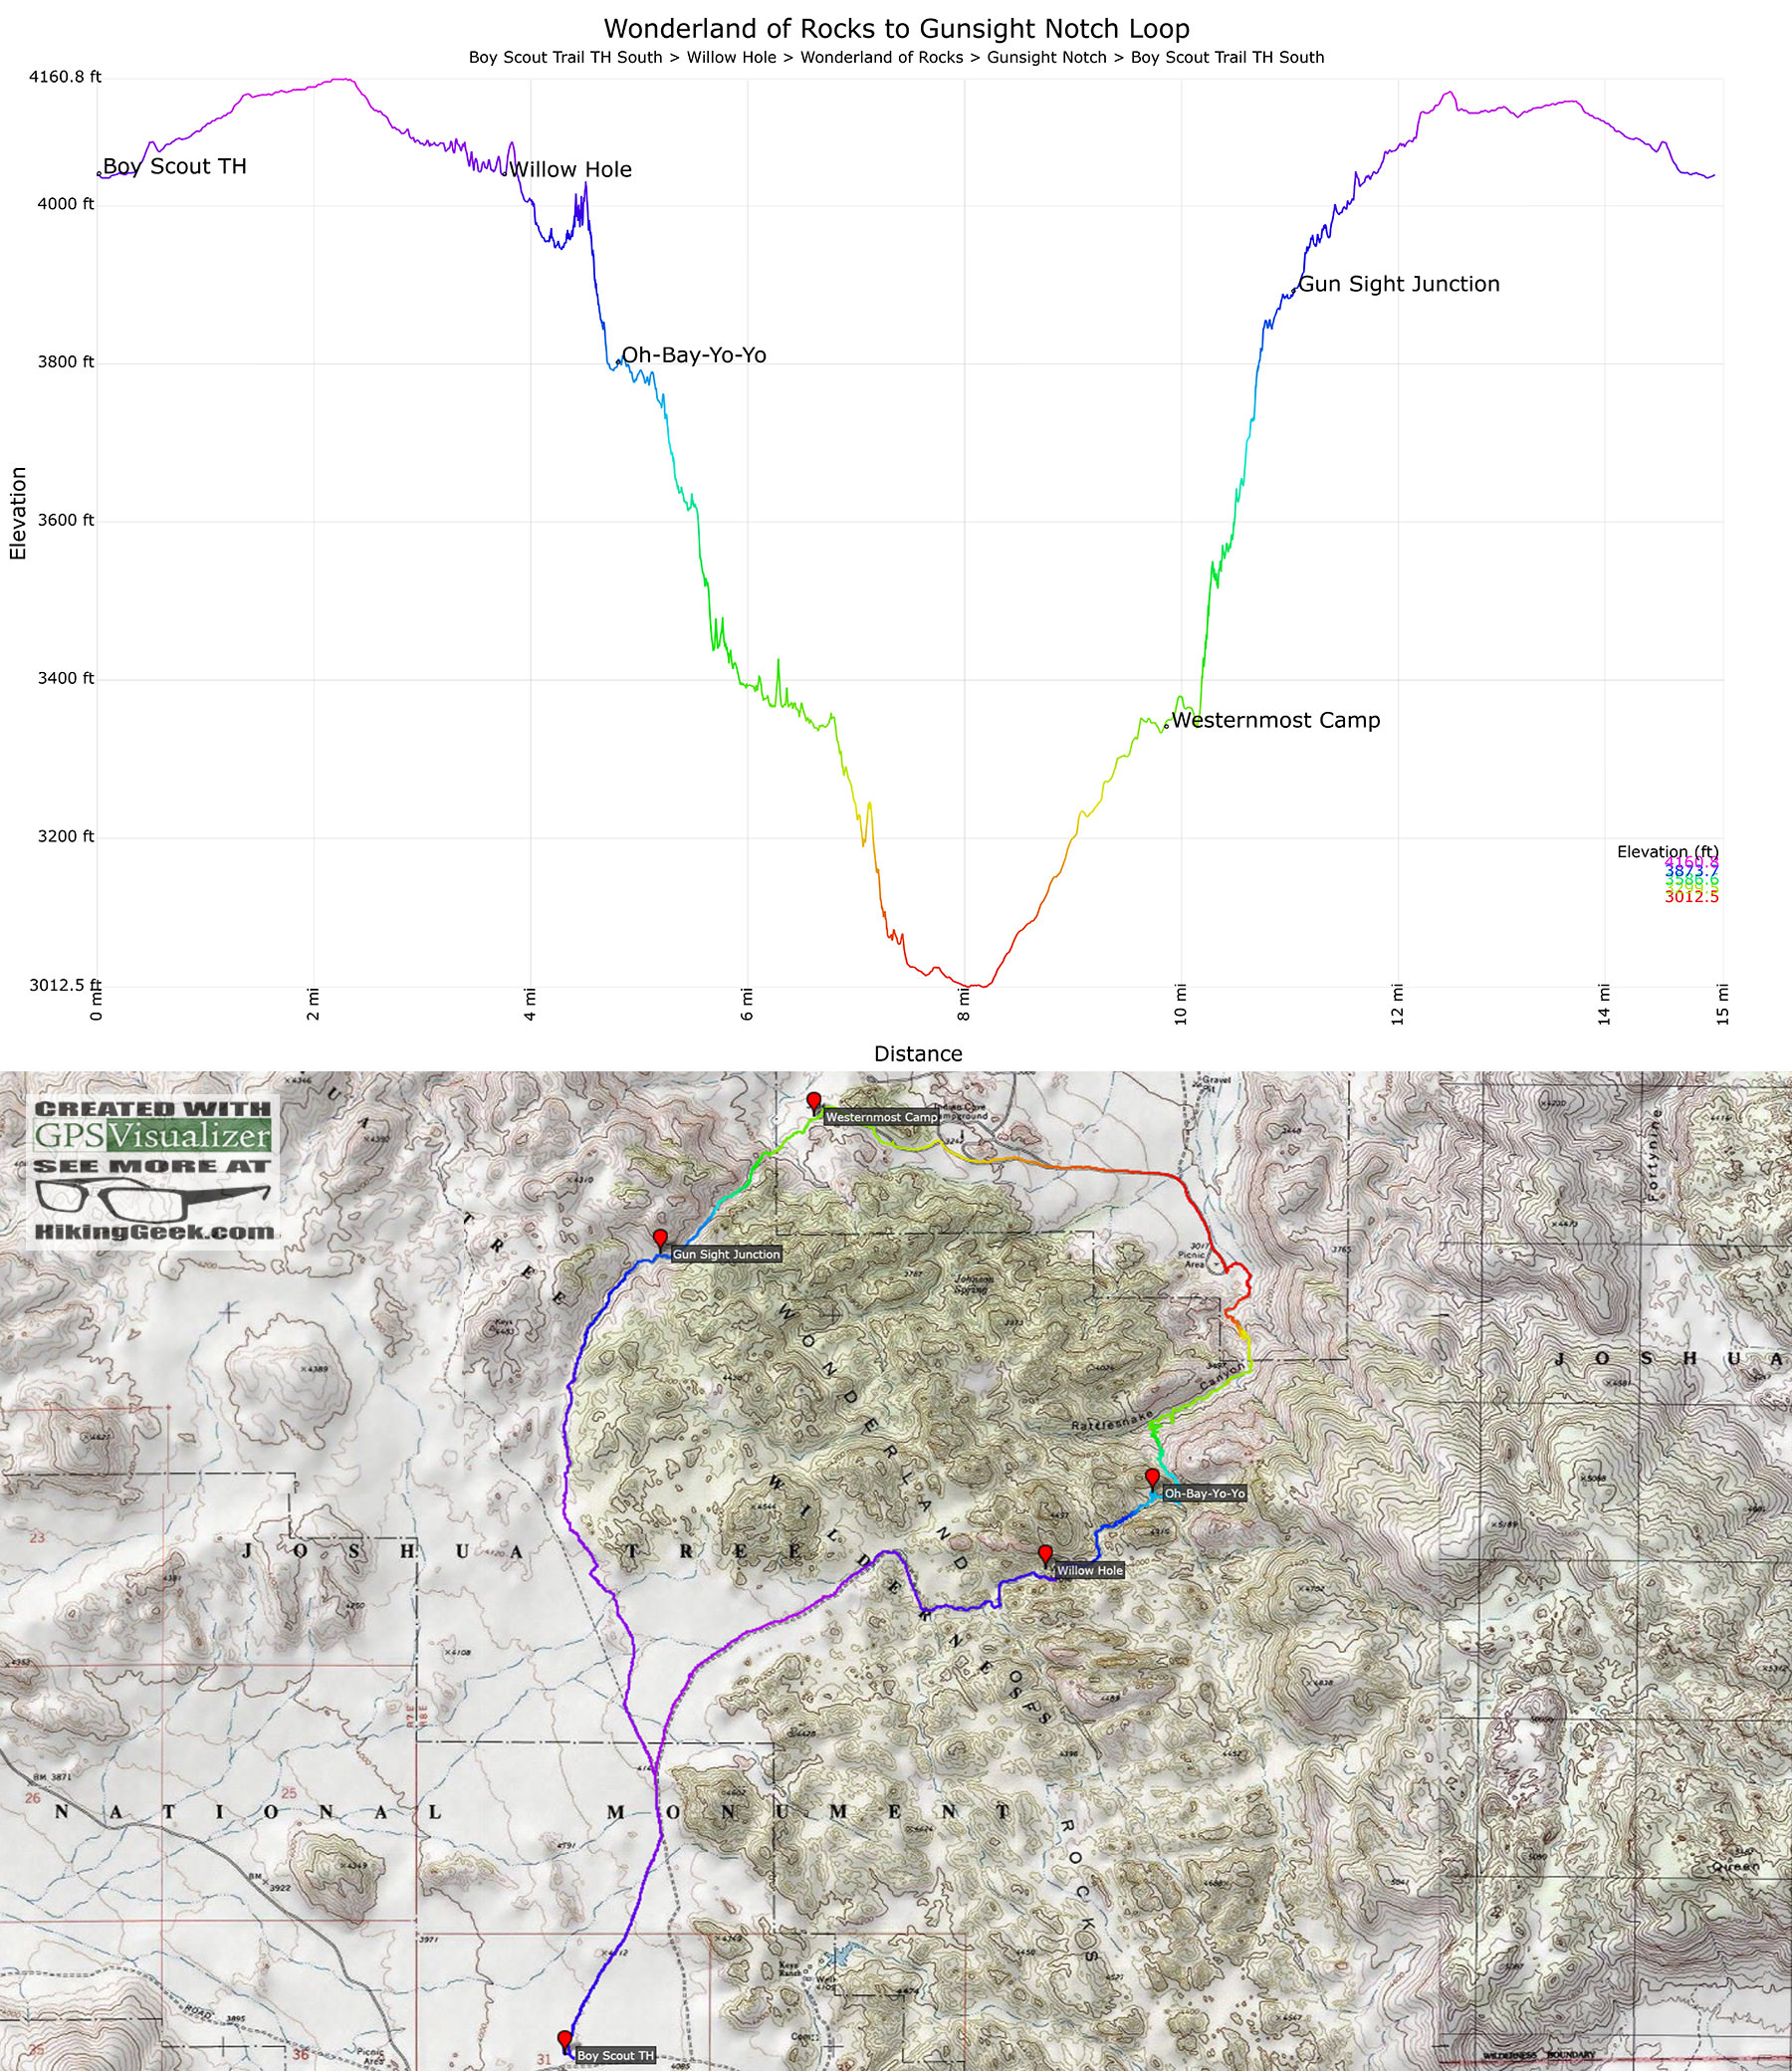 Creating GPX files for your Garmin GPS - Hiking Photos, Trip Reports